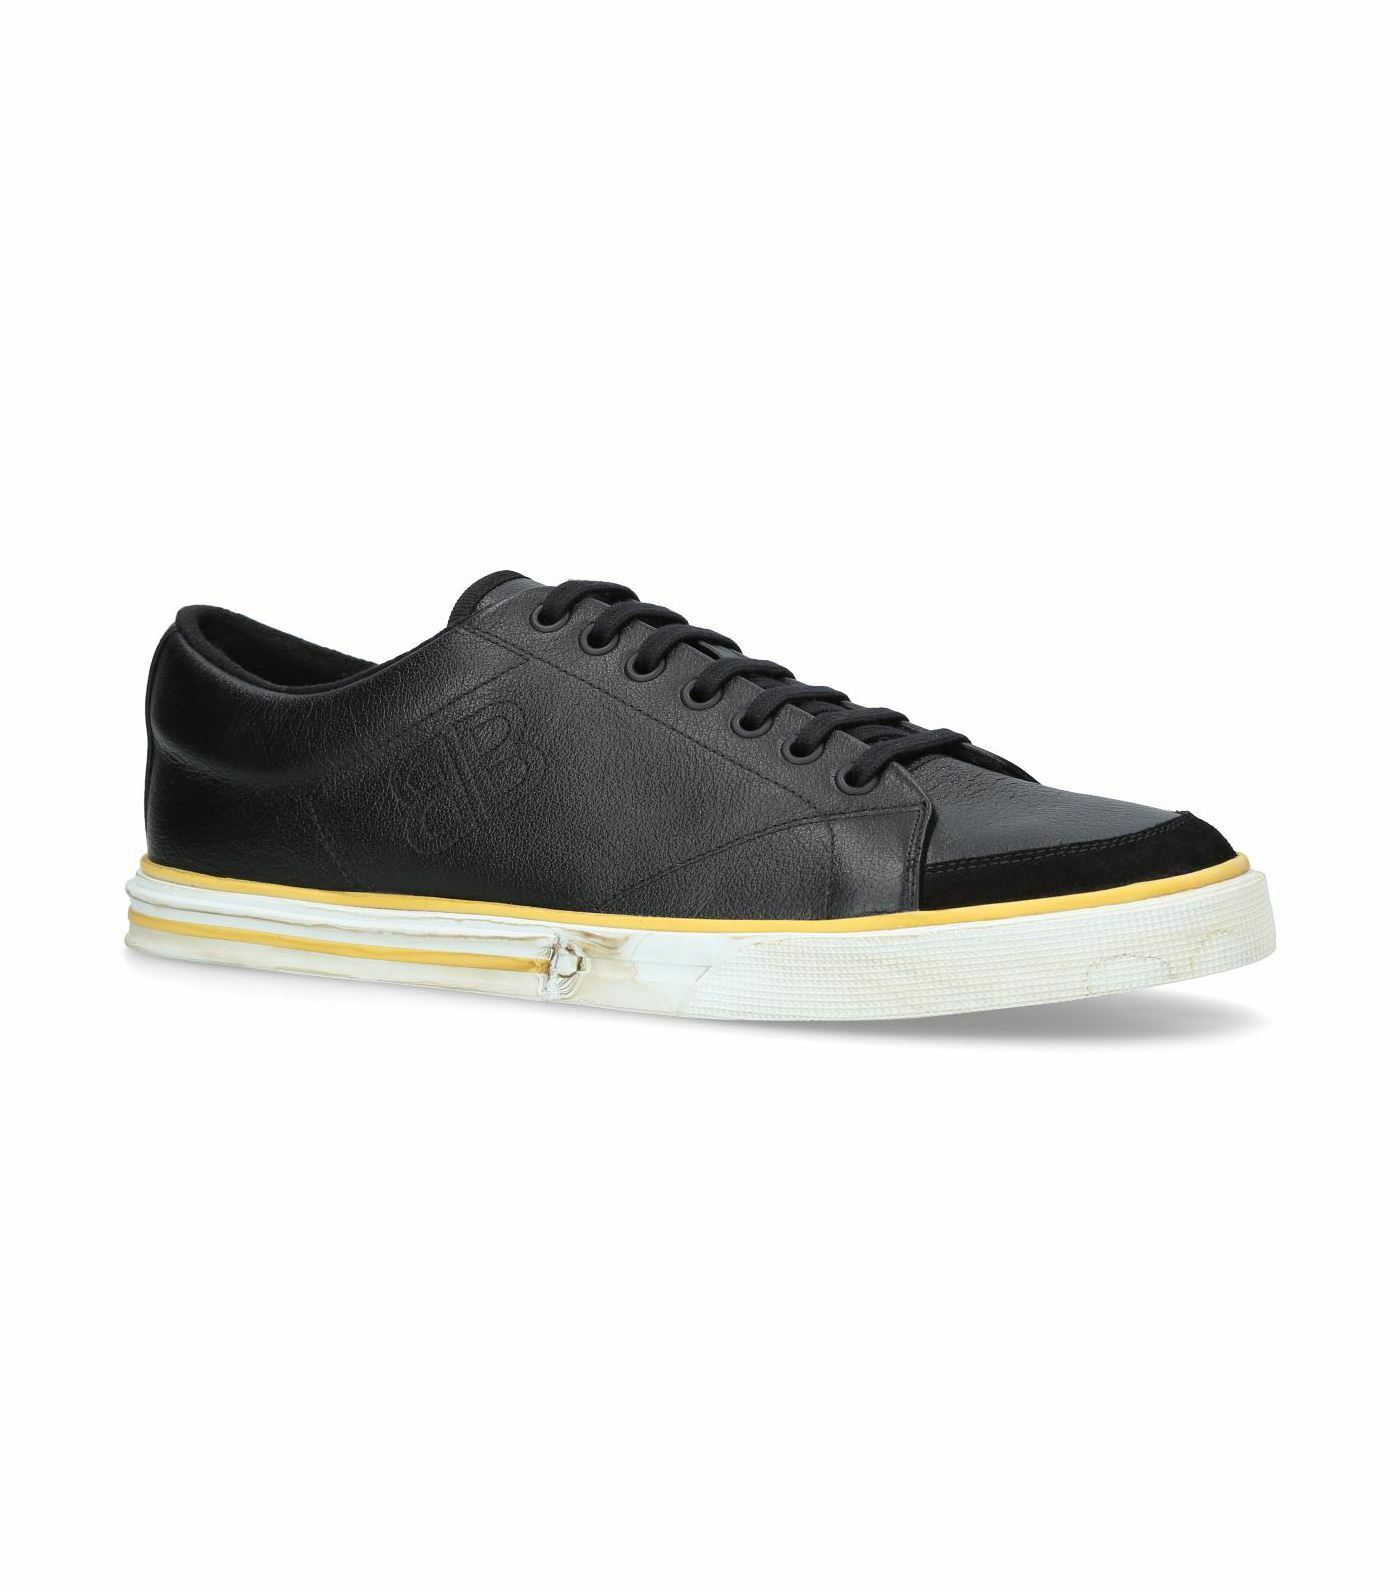 Balenciaga Match low-top calfskin leather kinda distressed trainers Black